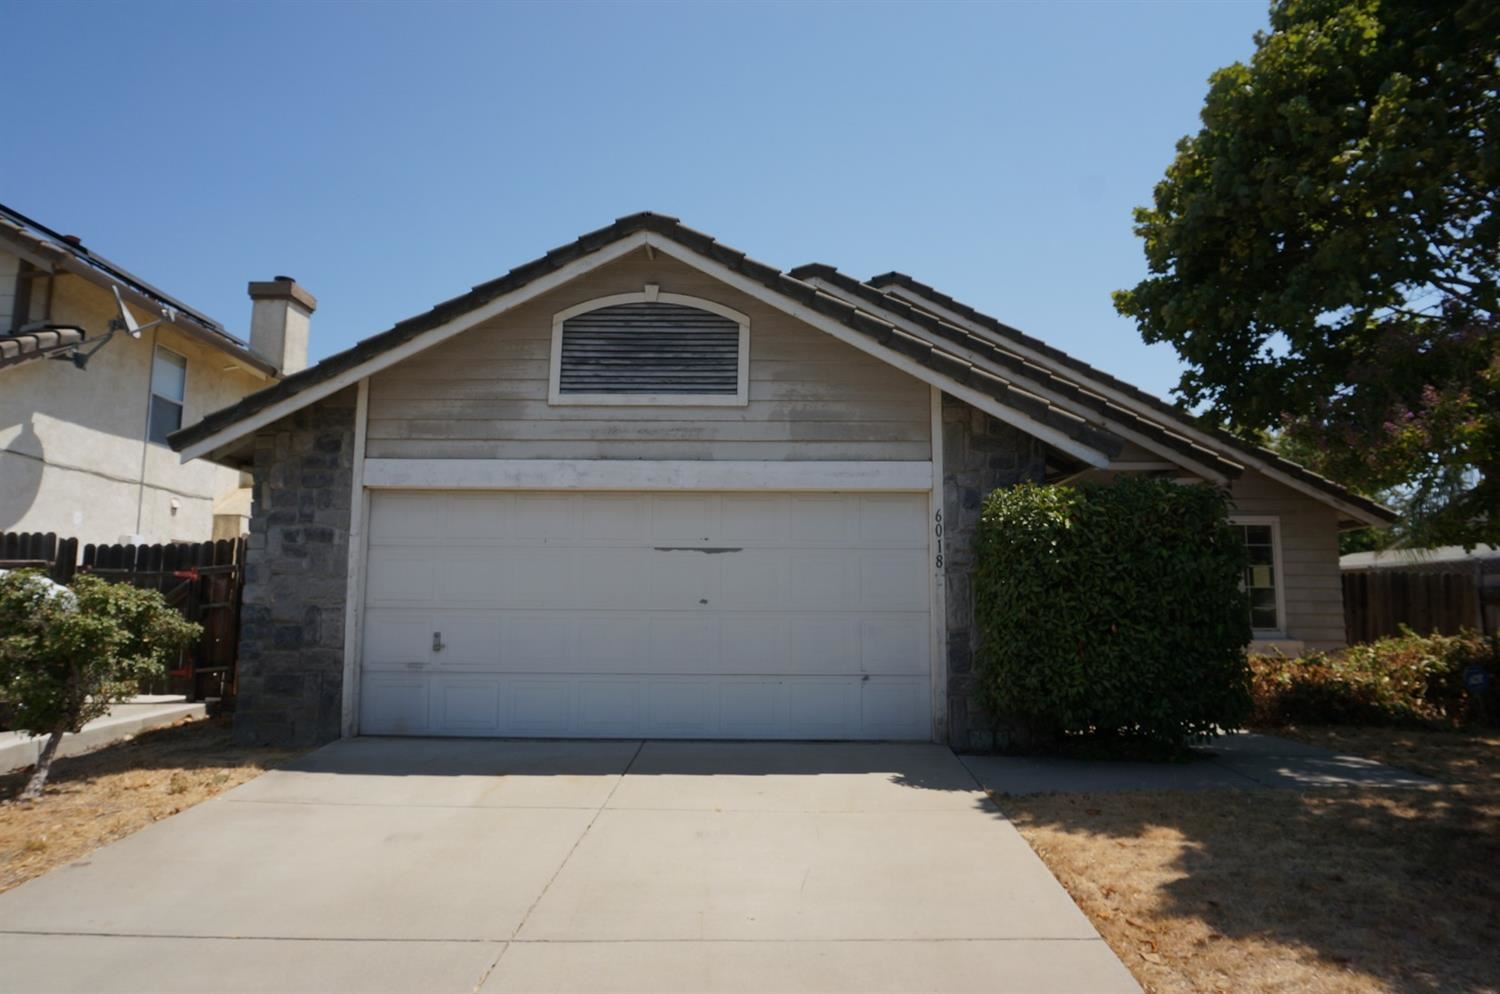 6018 Willow Song Court, Riverbank, CA 95367 - MLS#: 221104090